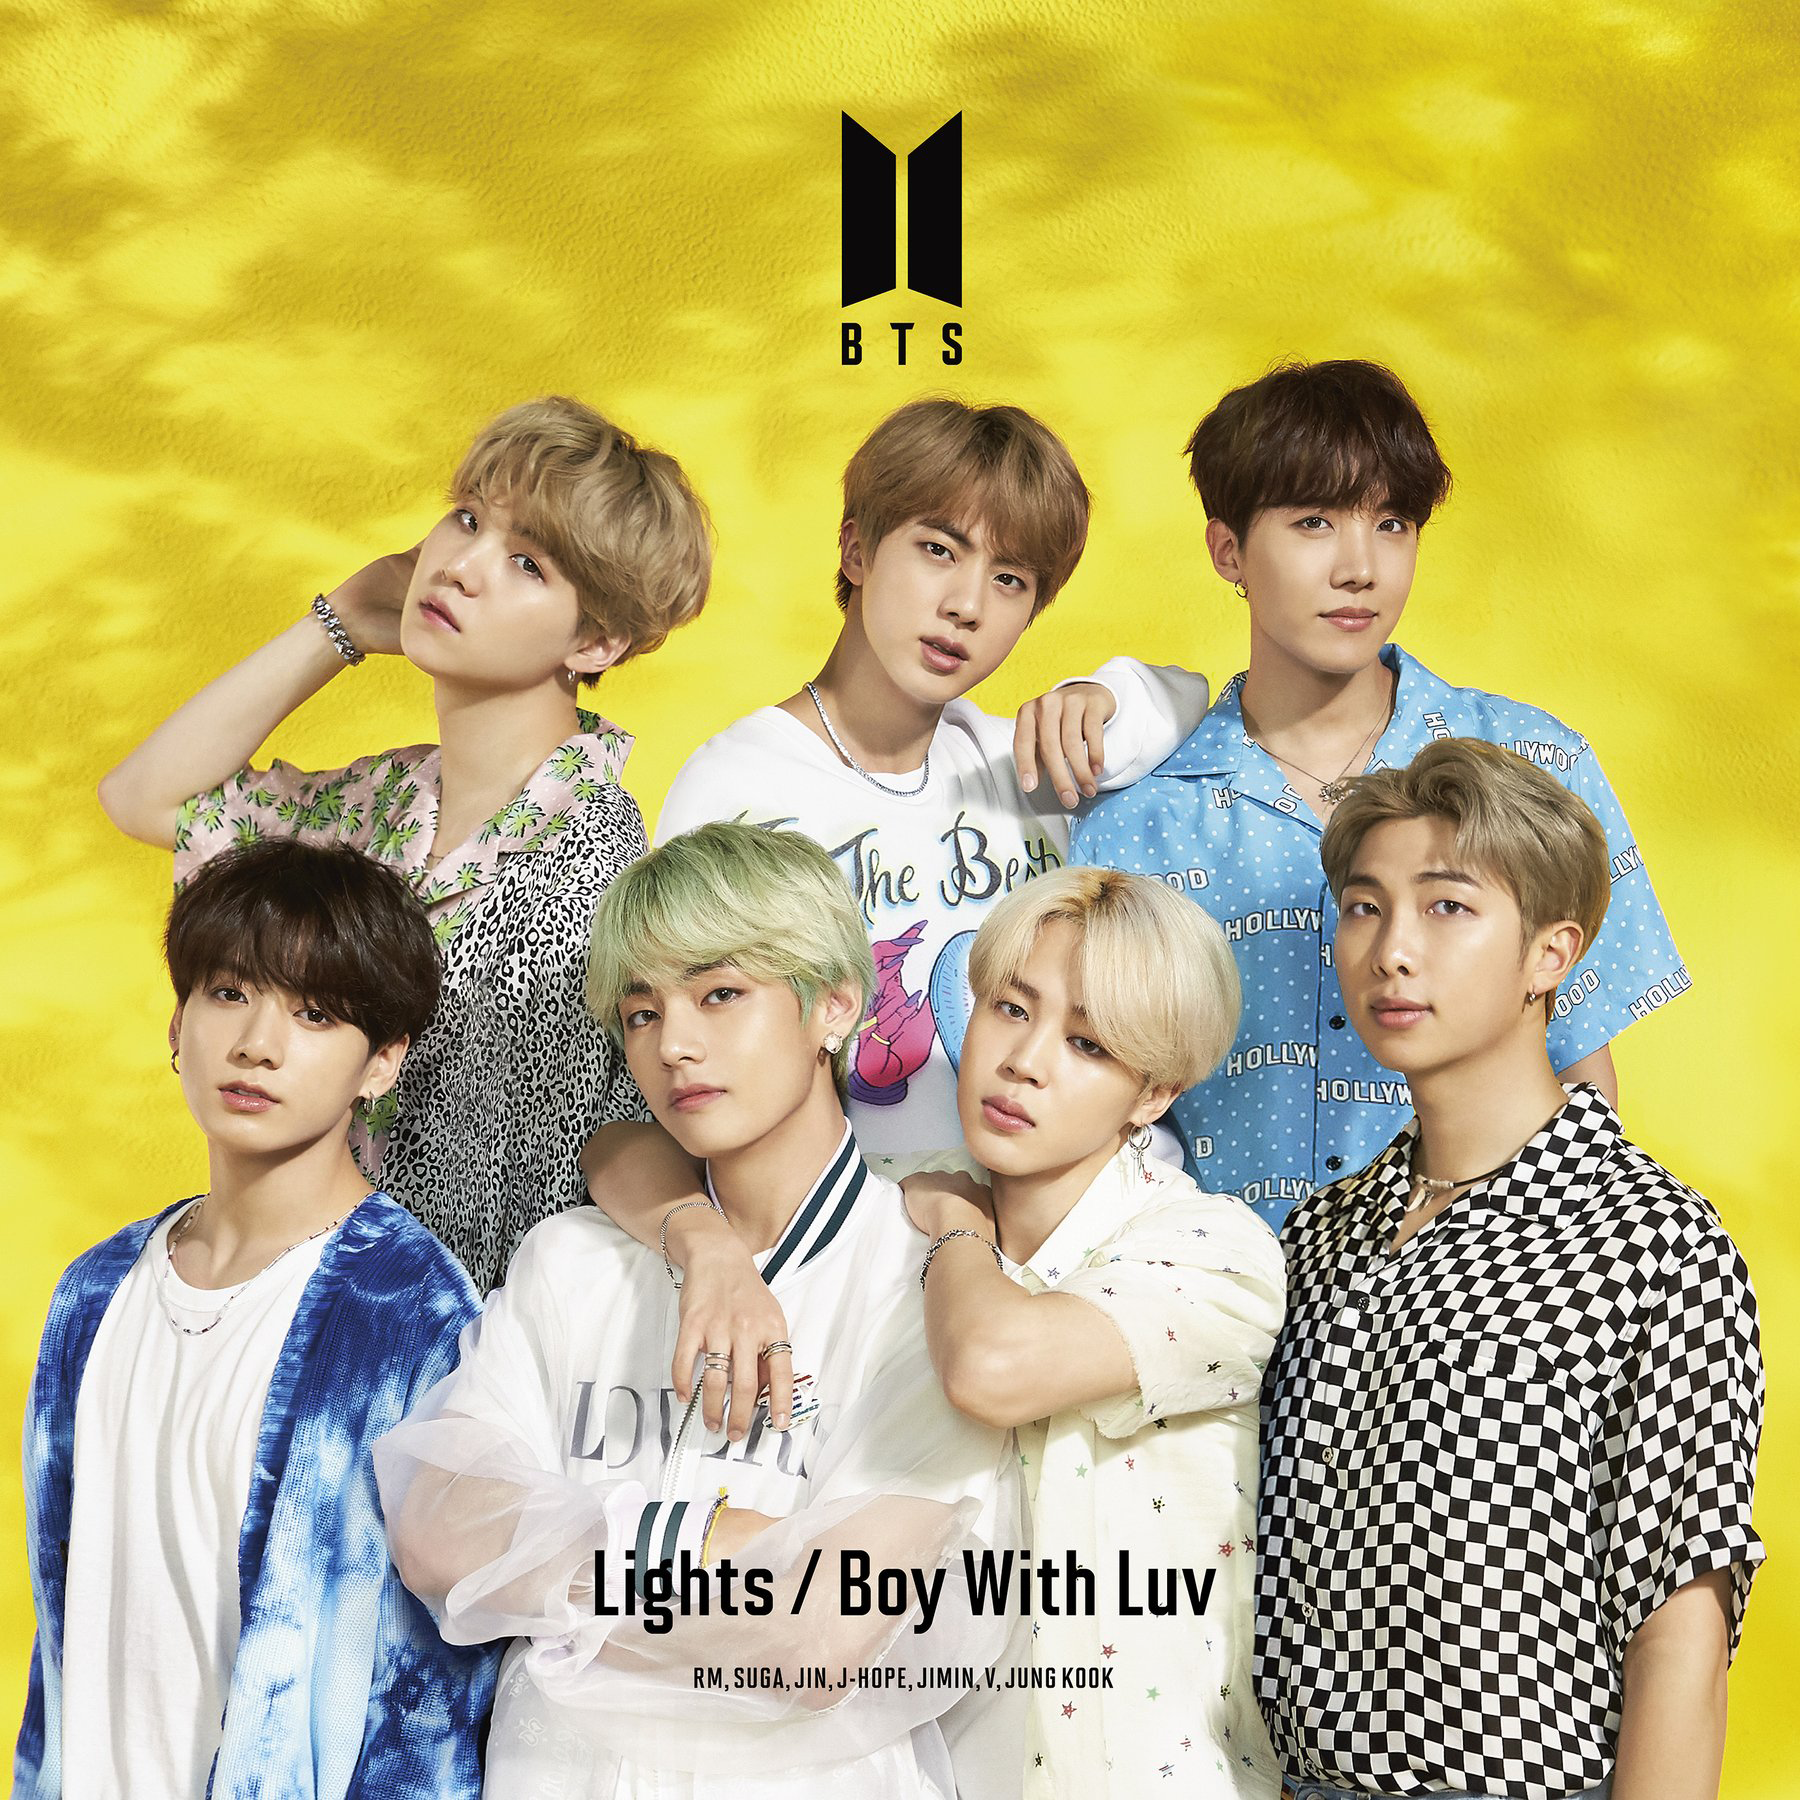 BTS Lights Boy With Luv Type C cover art.png